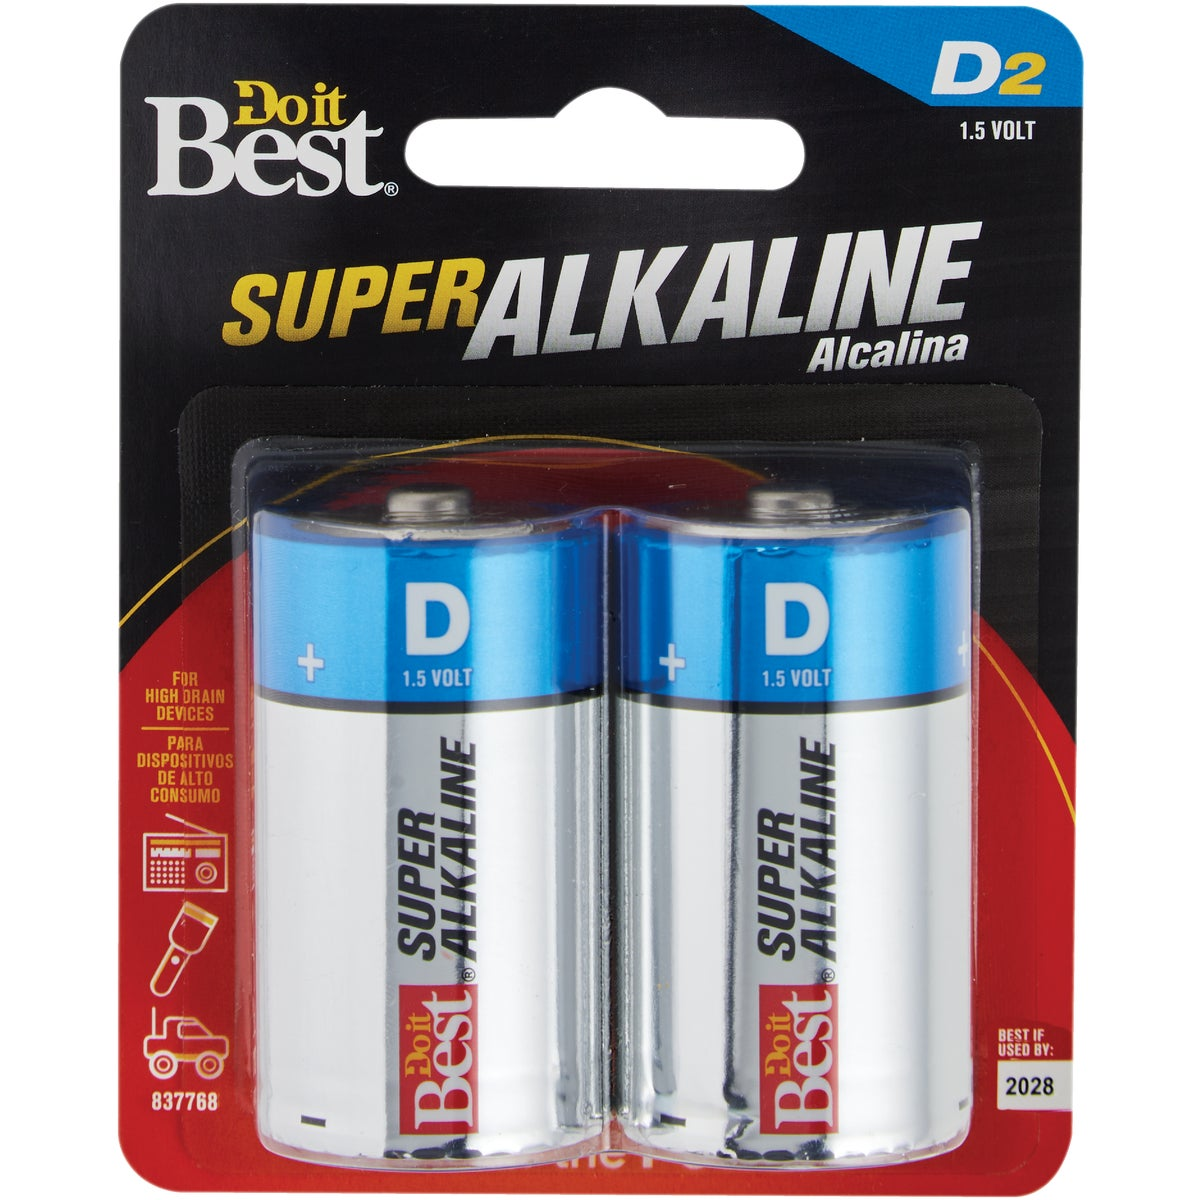 2PK DIB D ALK BATTERY - DIB813-2 by Ray O Vac